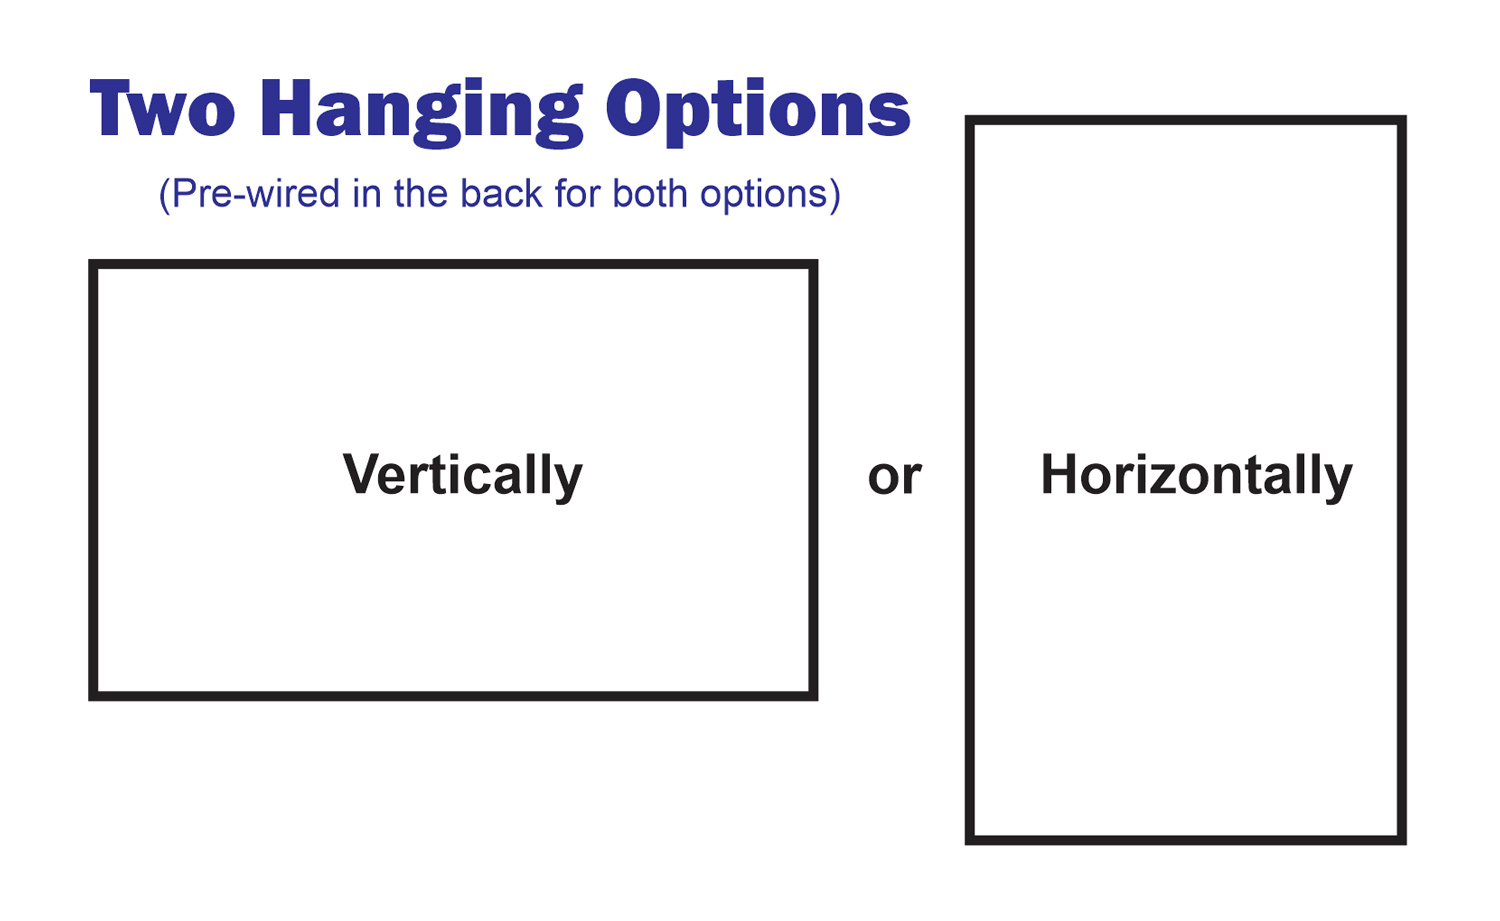 -two-hanging-options-vertical-or-horizontal-pre-wired.jpg